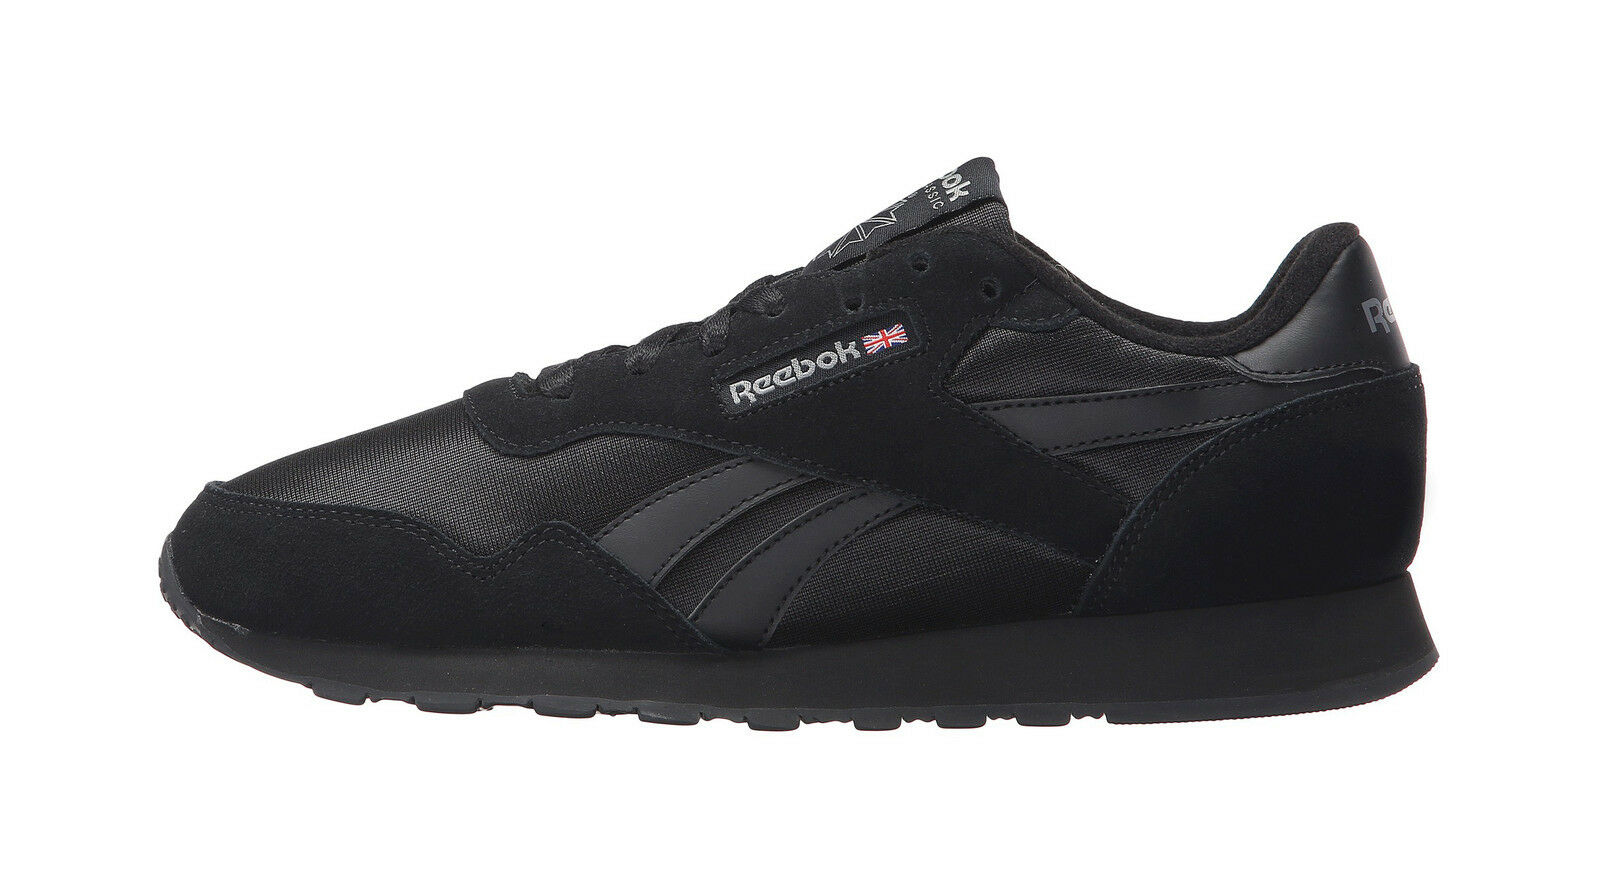 51dd9c0a0da Reebok Royal Nylon BD1554 All Black Carbon Mens US Size 9.5 UK 8.5 ...